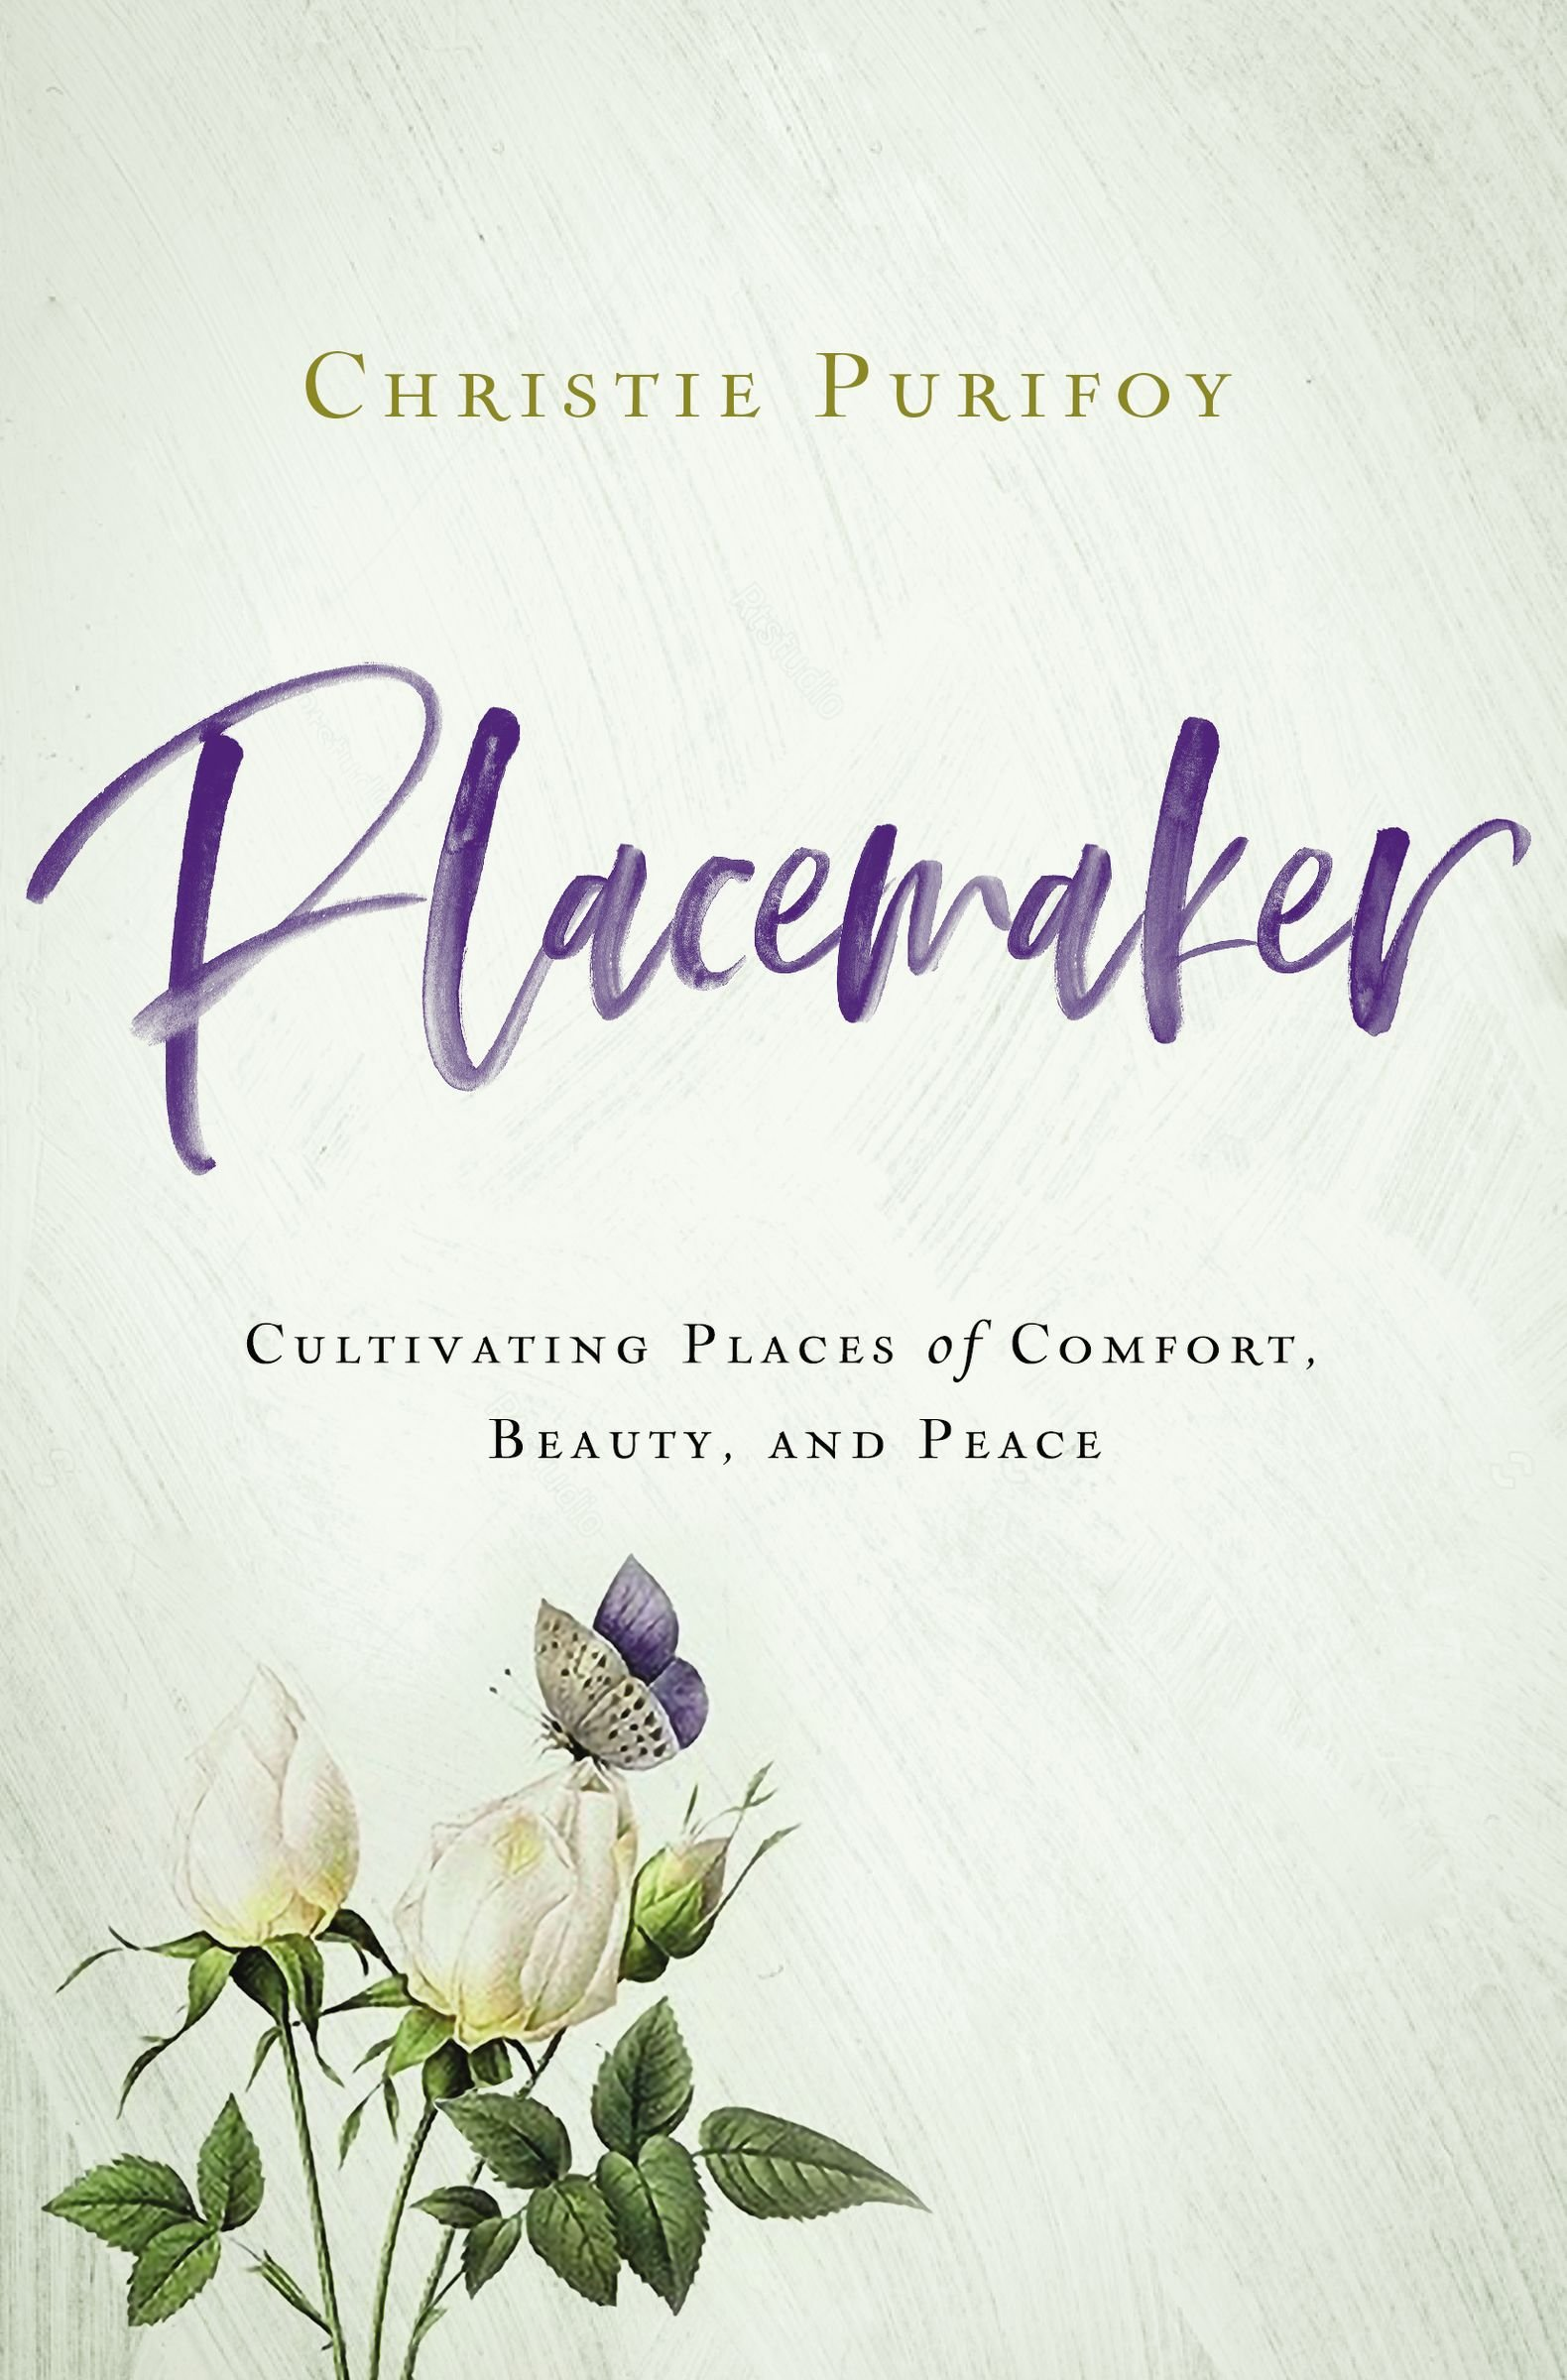 Placemaker: Cultivating Places of Comfort, Beauty, and Peace